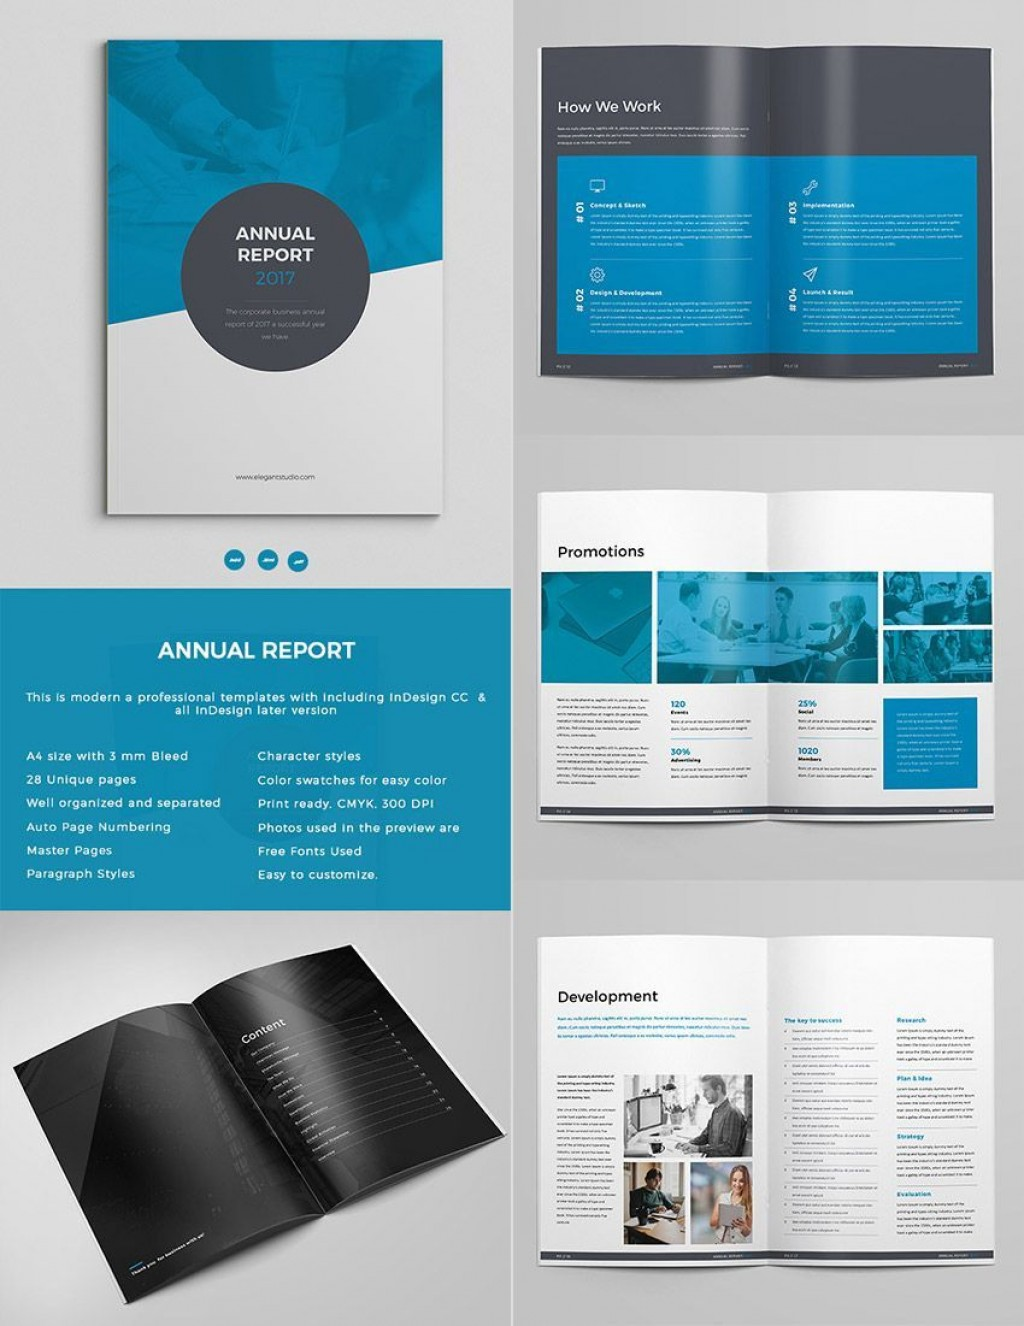 003 Simple Annual Report Design Template Indesign Picture  Free DownloadLarge